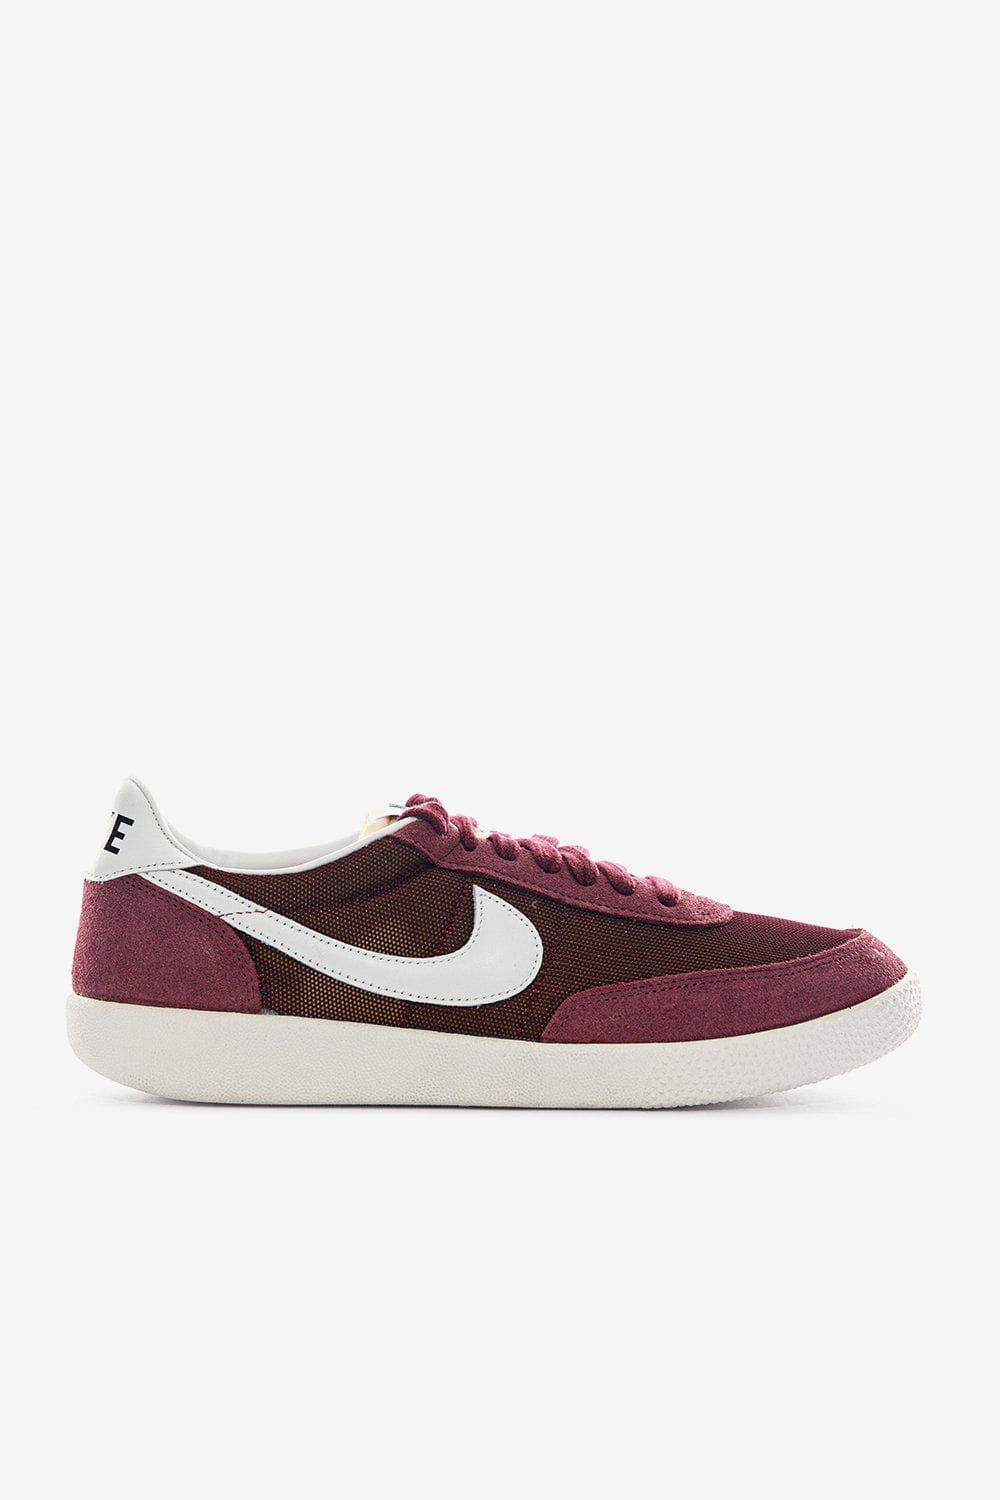 Nike Footwear Killshot SP